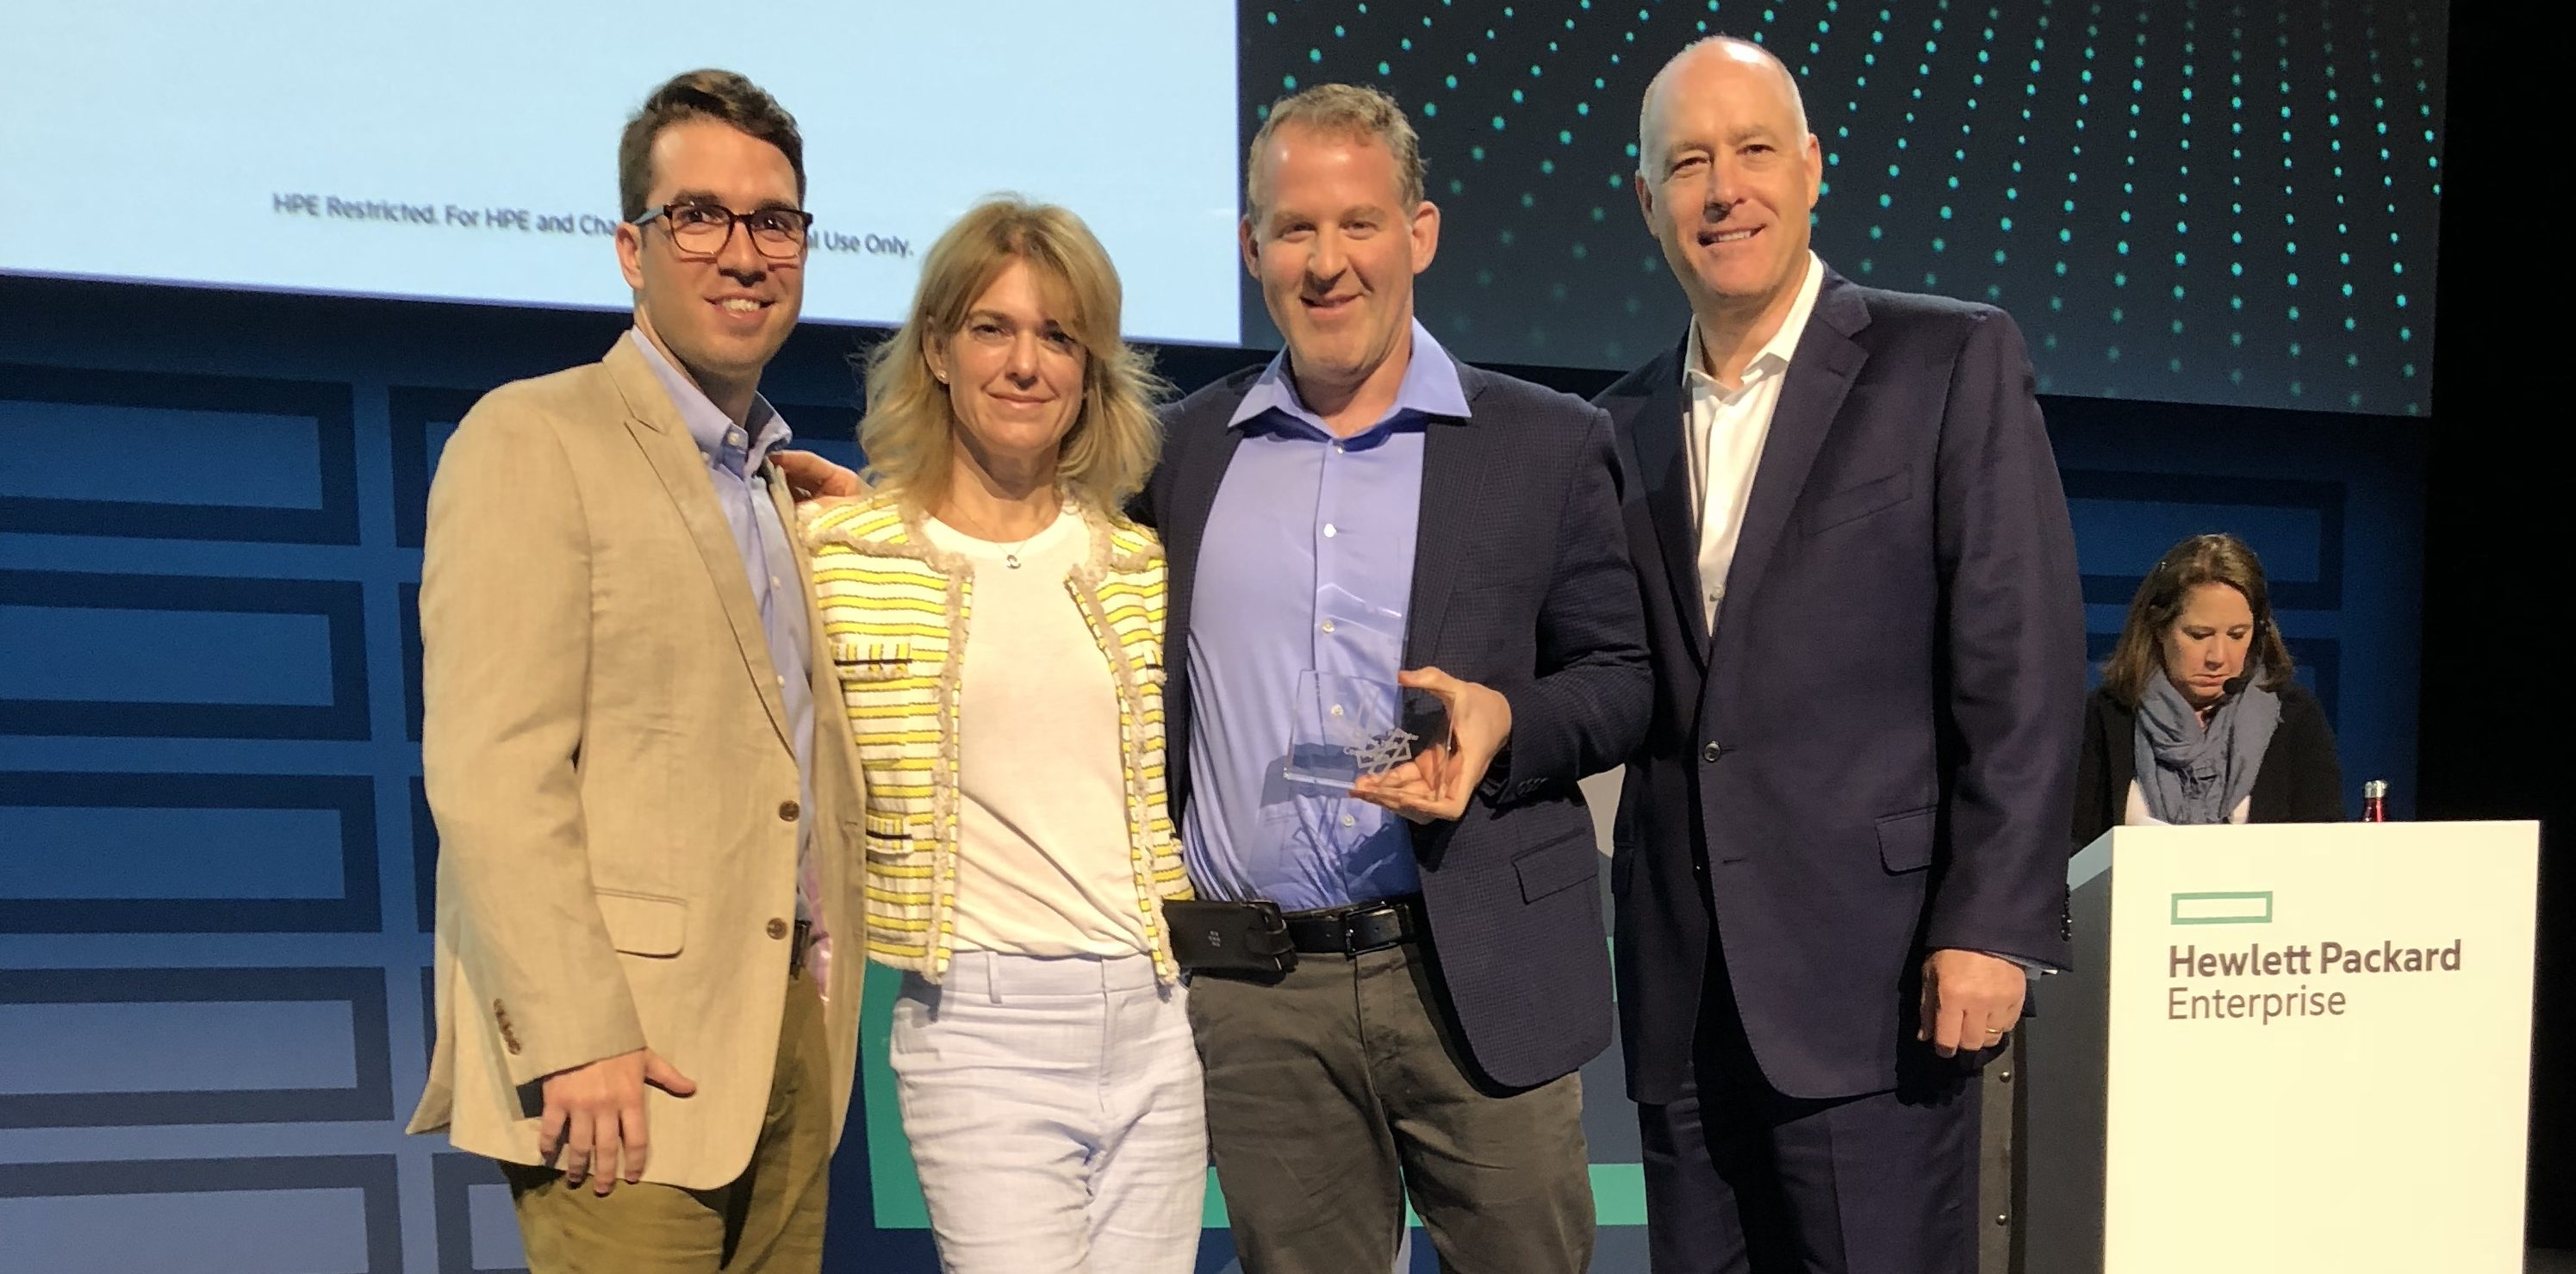 HPE Solution Provider of the Year 2018 - Compugen